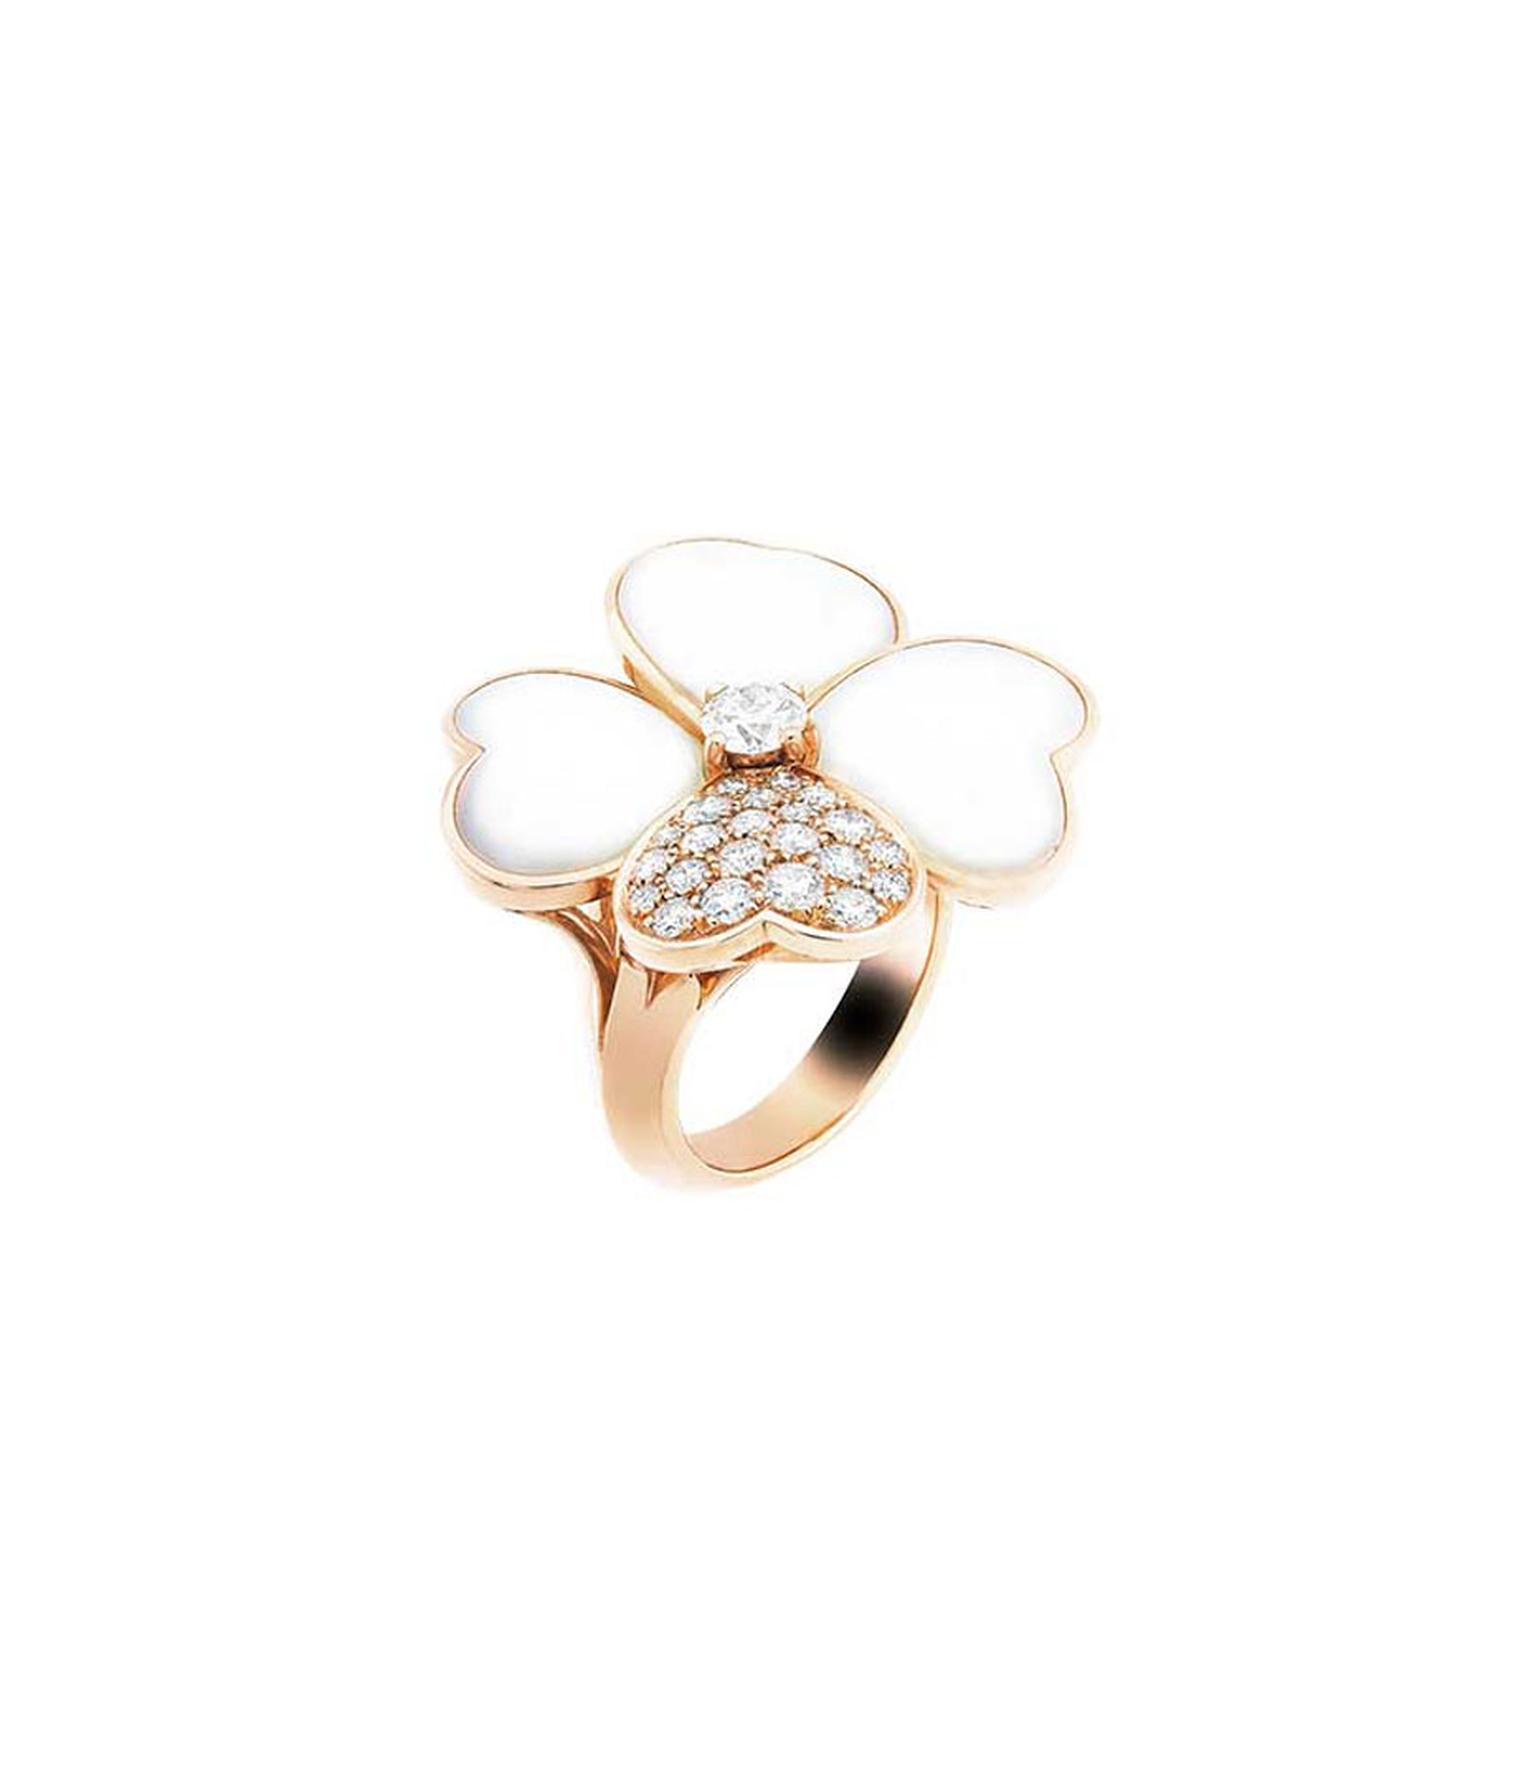 Van Cleef & Arpels Cosmos ring in rose gold with a brilliant-cut diamond bud surrounded by white mother-of-pearl and diamond petals